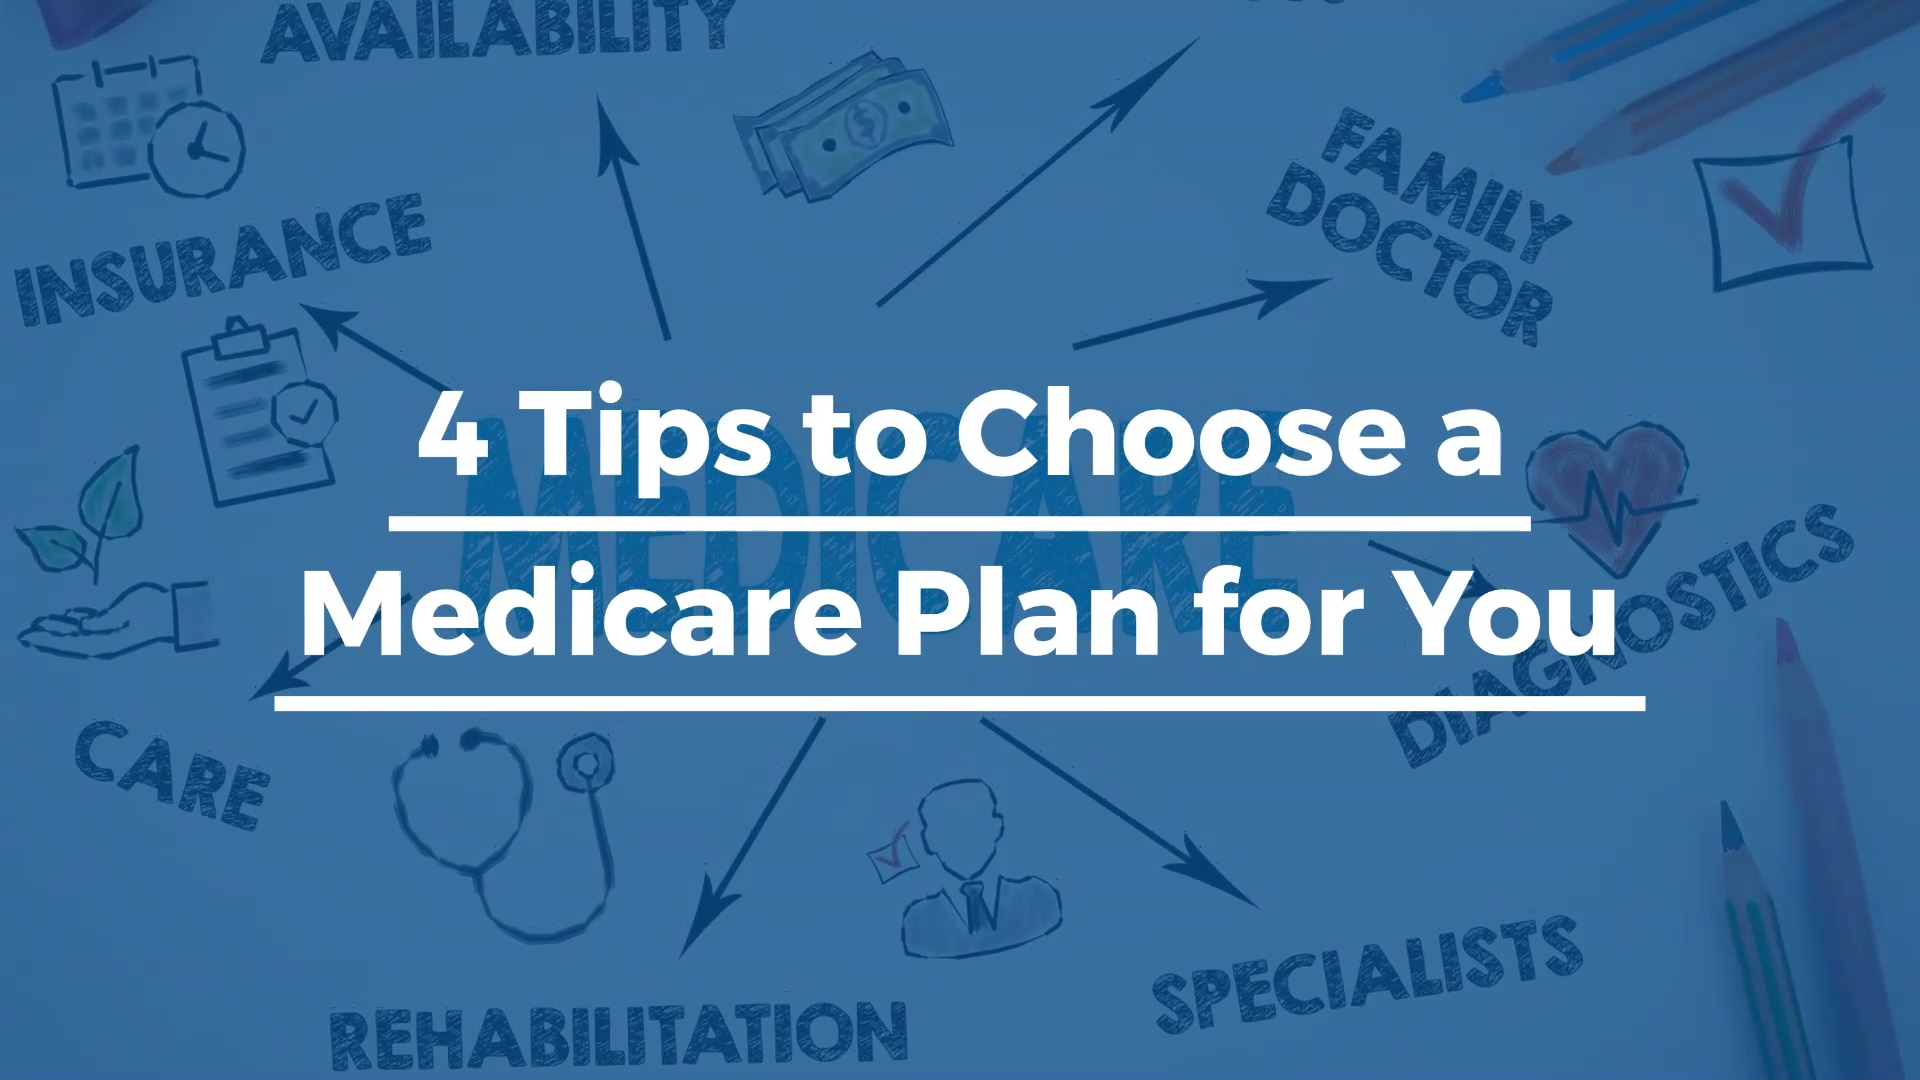 4_Tips_to_Choose_a_Medicare_Plan_for_You